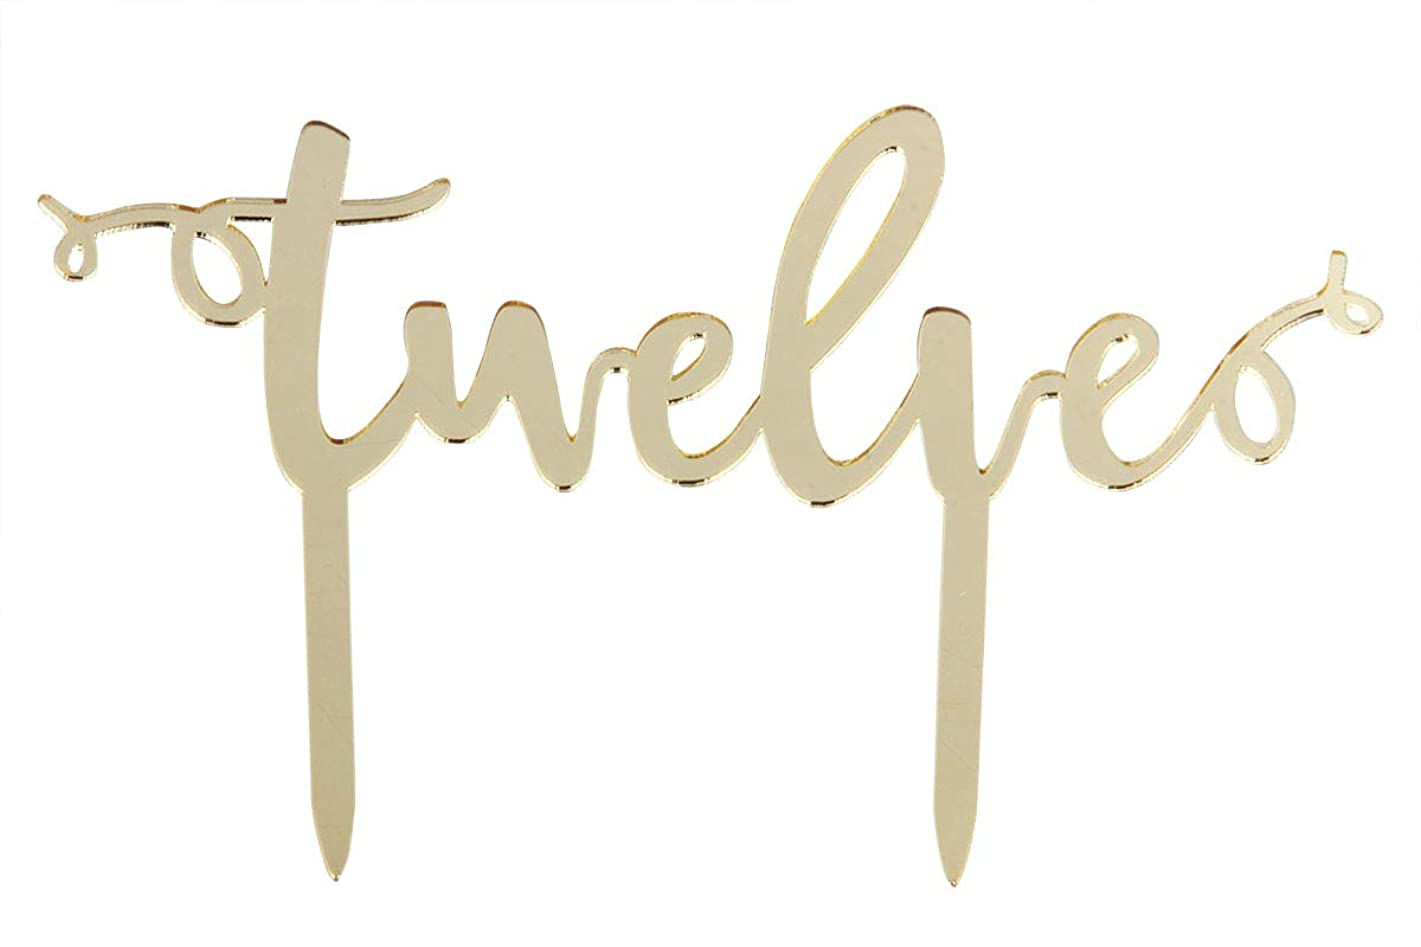 Mirror Gold Twelve Cake Topper -Happy 12th Birthday or 12th Anniversary Cake Topper Acrylic Party Decoration Supplies